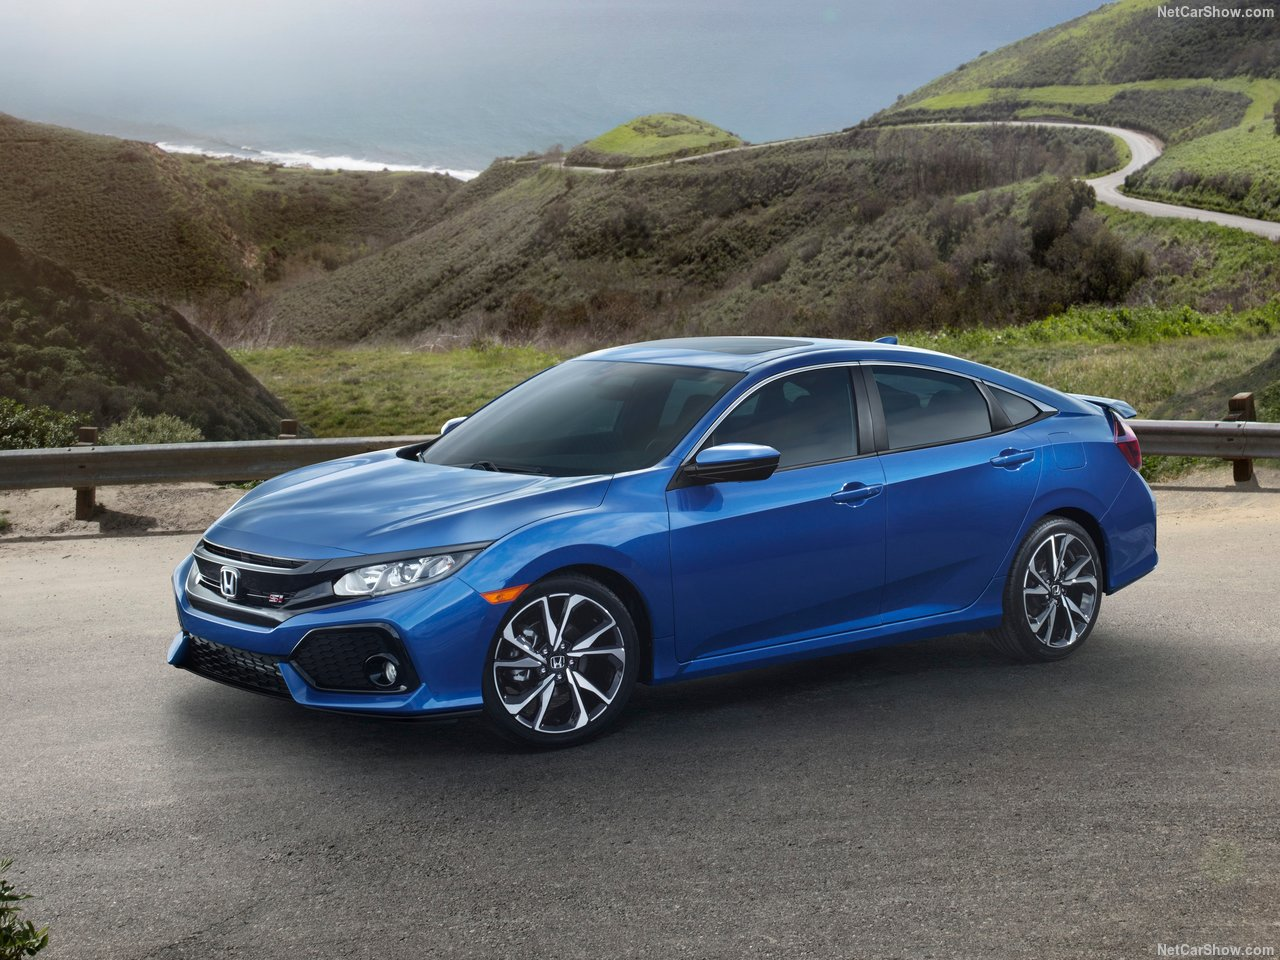 Honda-Civic_Si_Sedan-2017-1280-01.jpg